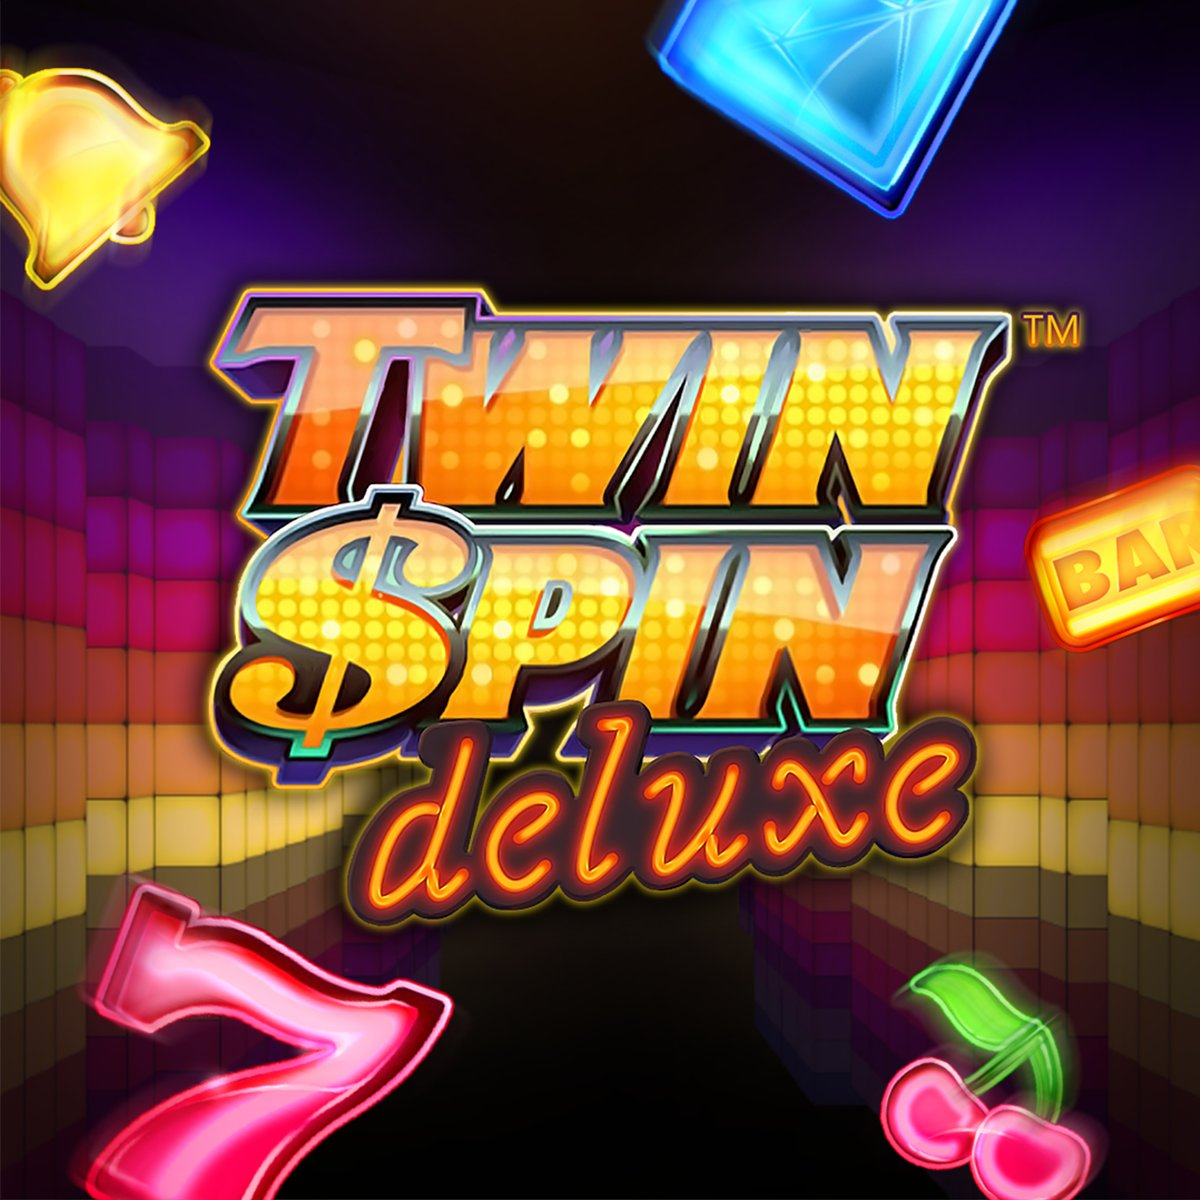 test Twitter Media - Remember that old school thrill? It's back….check out Twin Spin Deluxe! Get your boogie on Twin Spin Deluxe by NetEnt!  Read more on https://t.co/rZvbR1sVLI https://t.co/WNe0ejmCgz